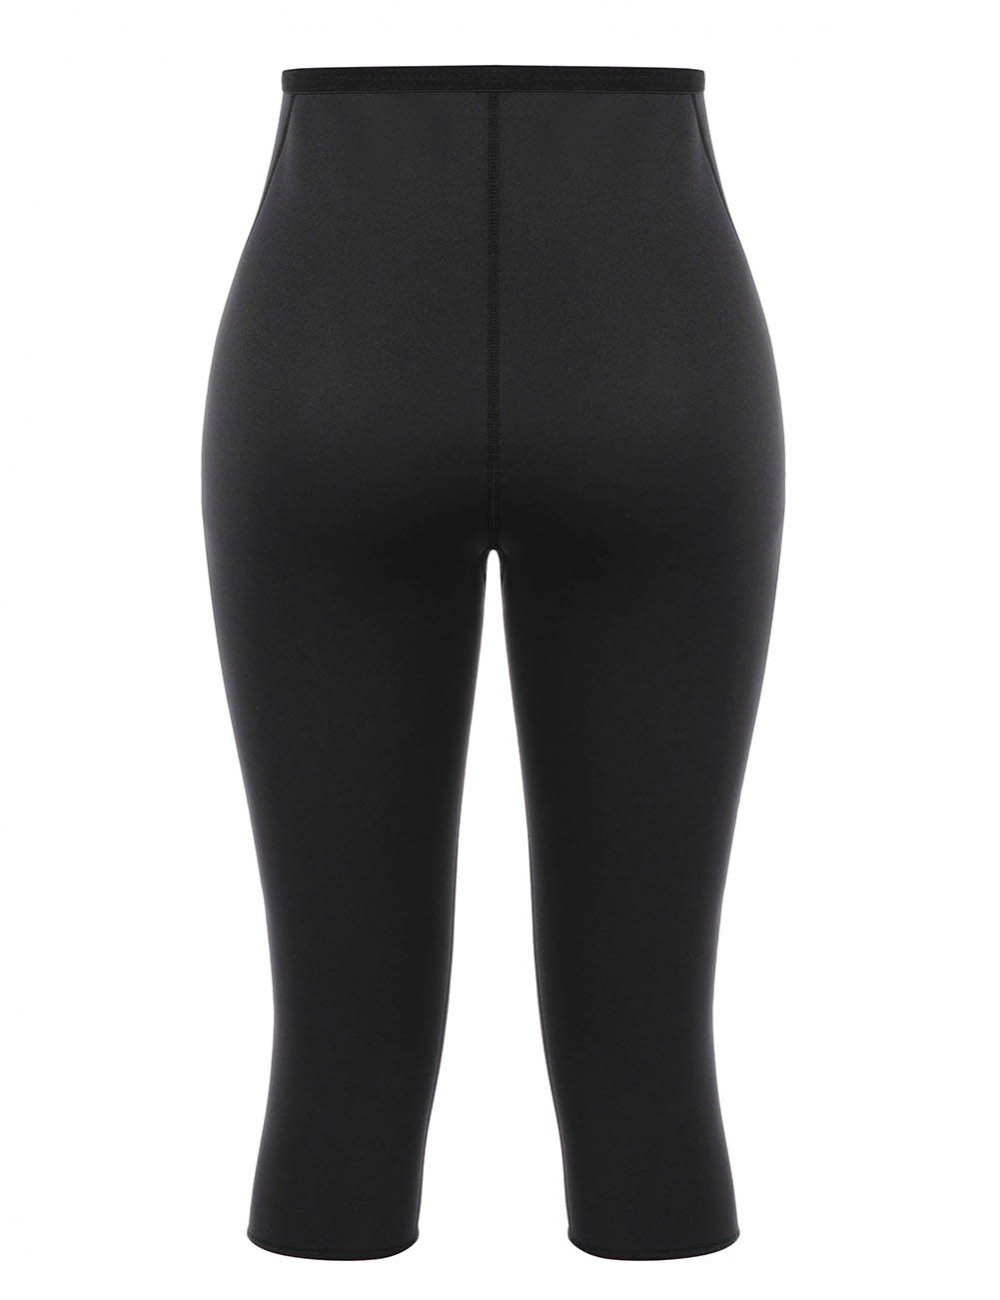 Black Neoprene High Waisted Tummy Control Pants Lose Weight